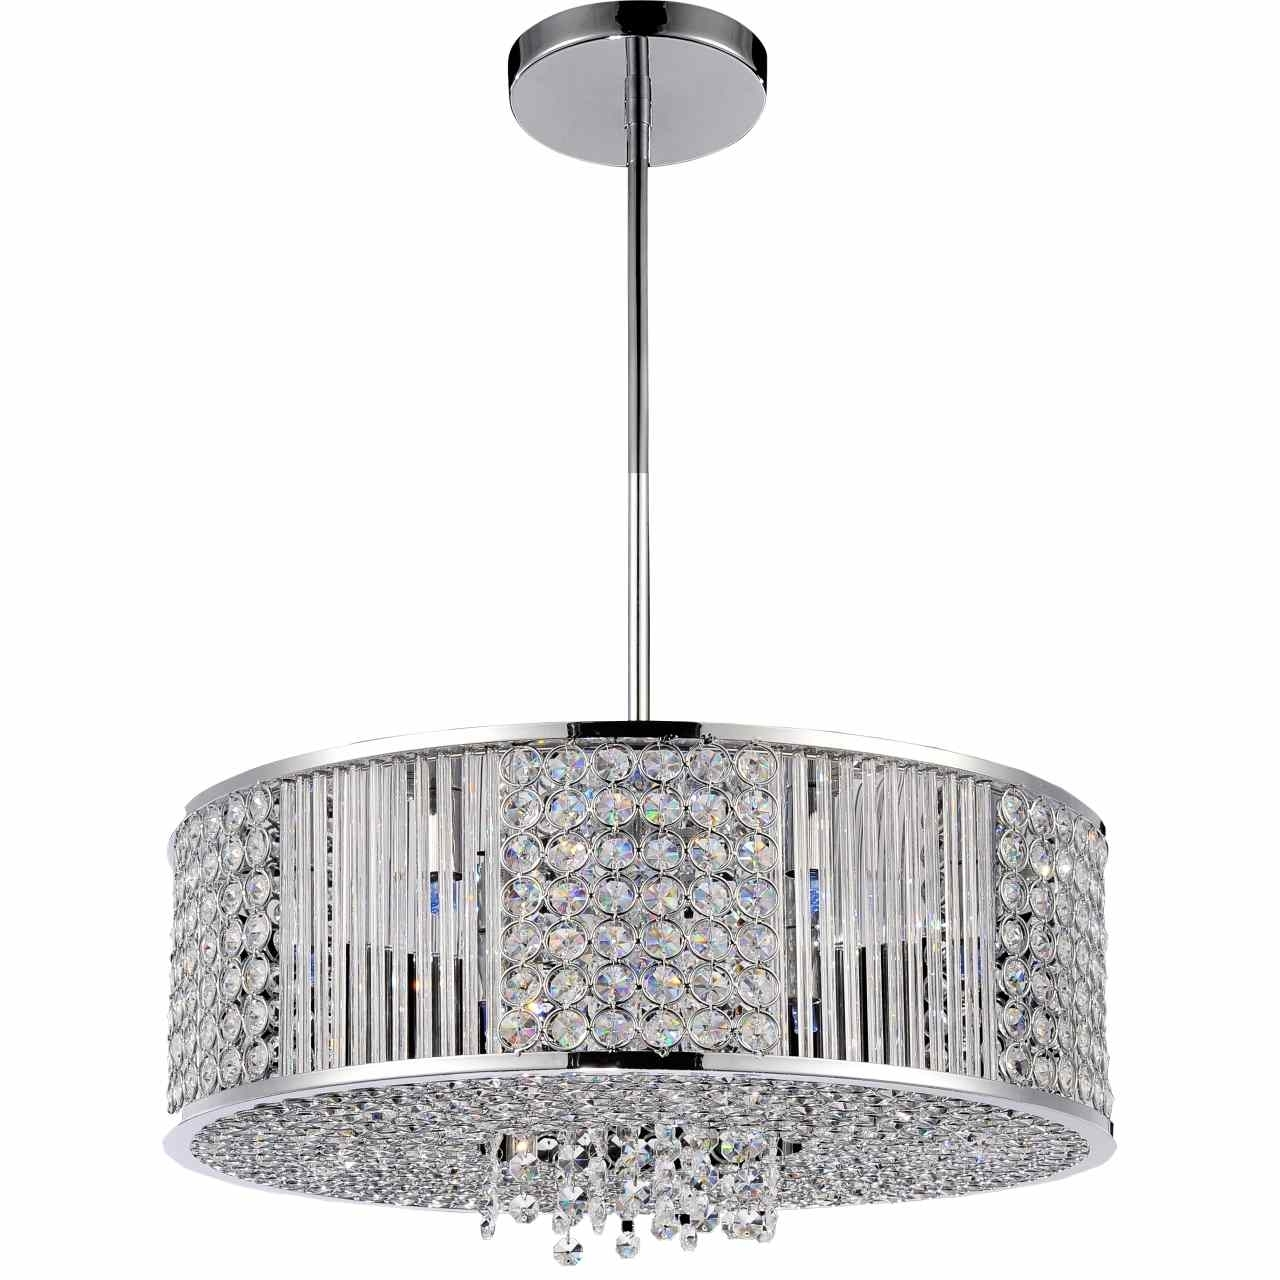 Newest Modern Pendant Chandelier Lighting With Regard To Brizzo Lighting Stores (View 4 of 20)